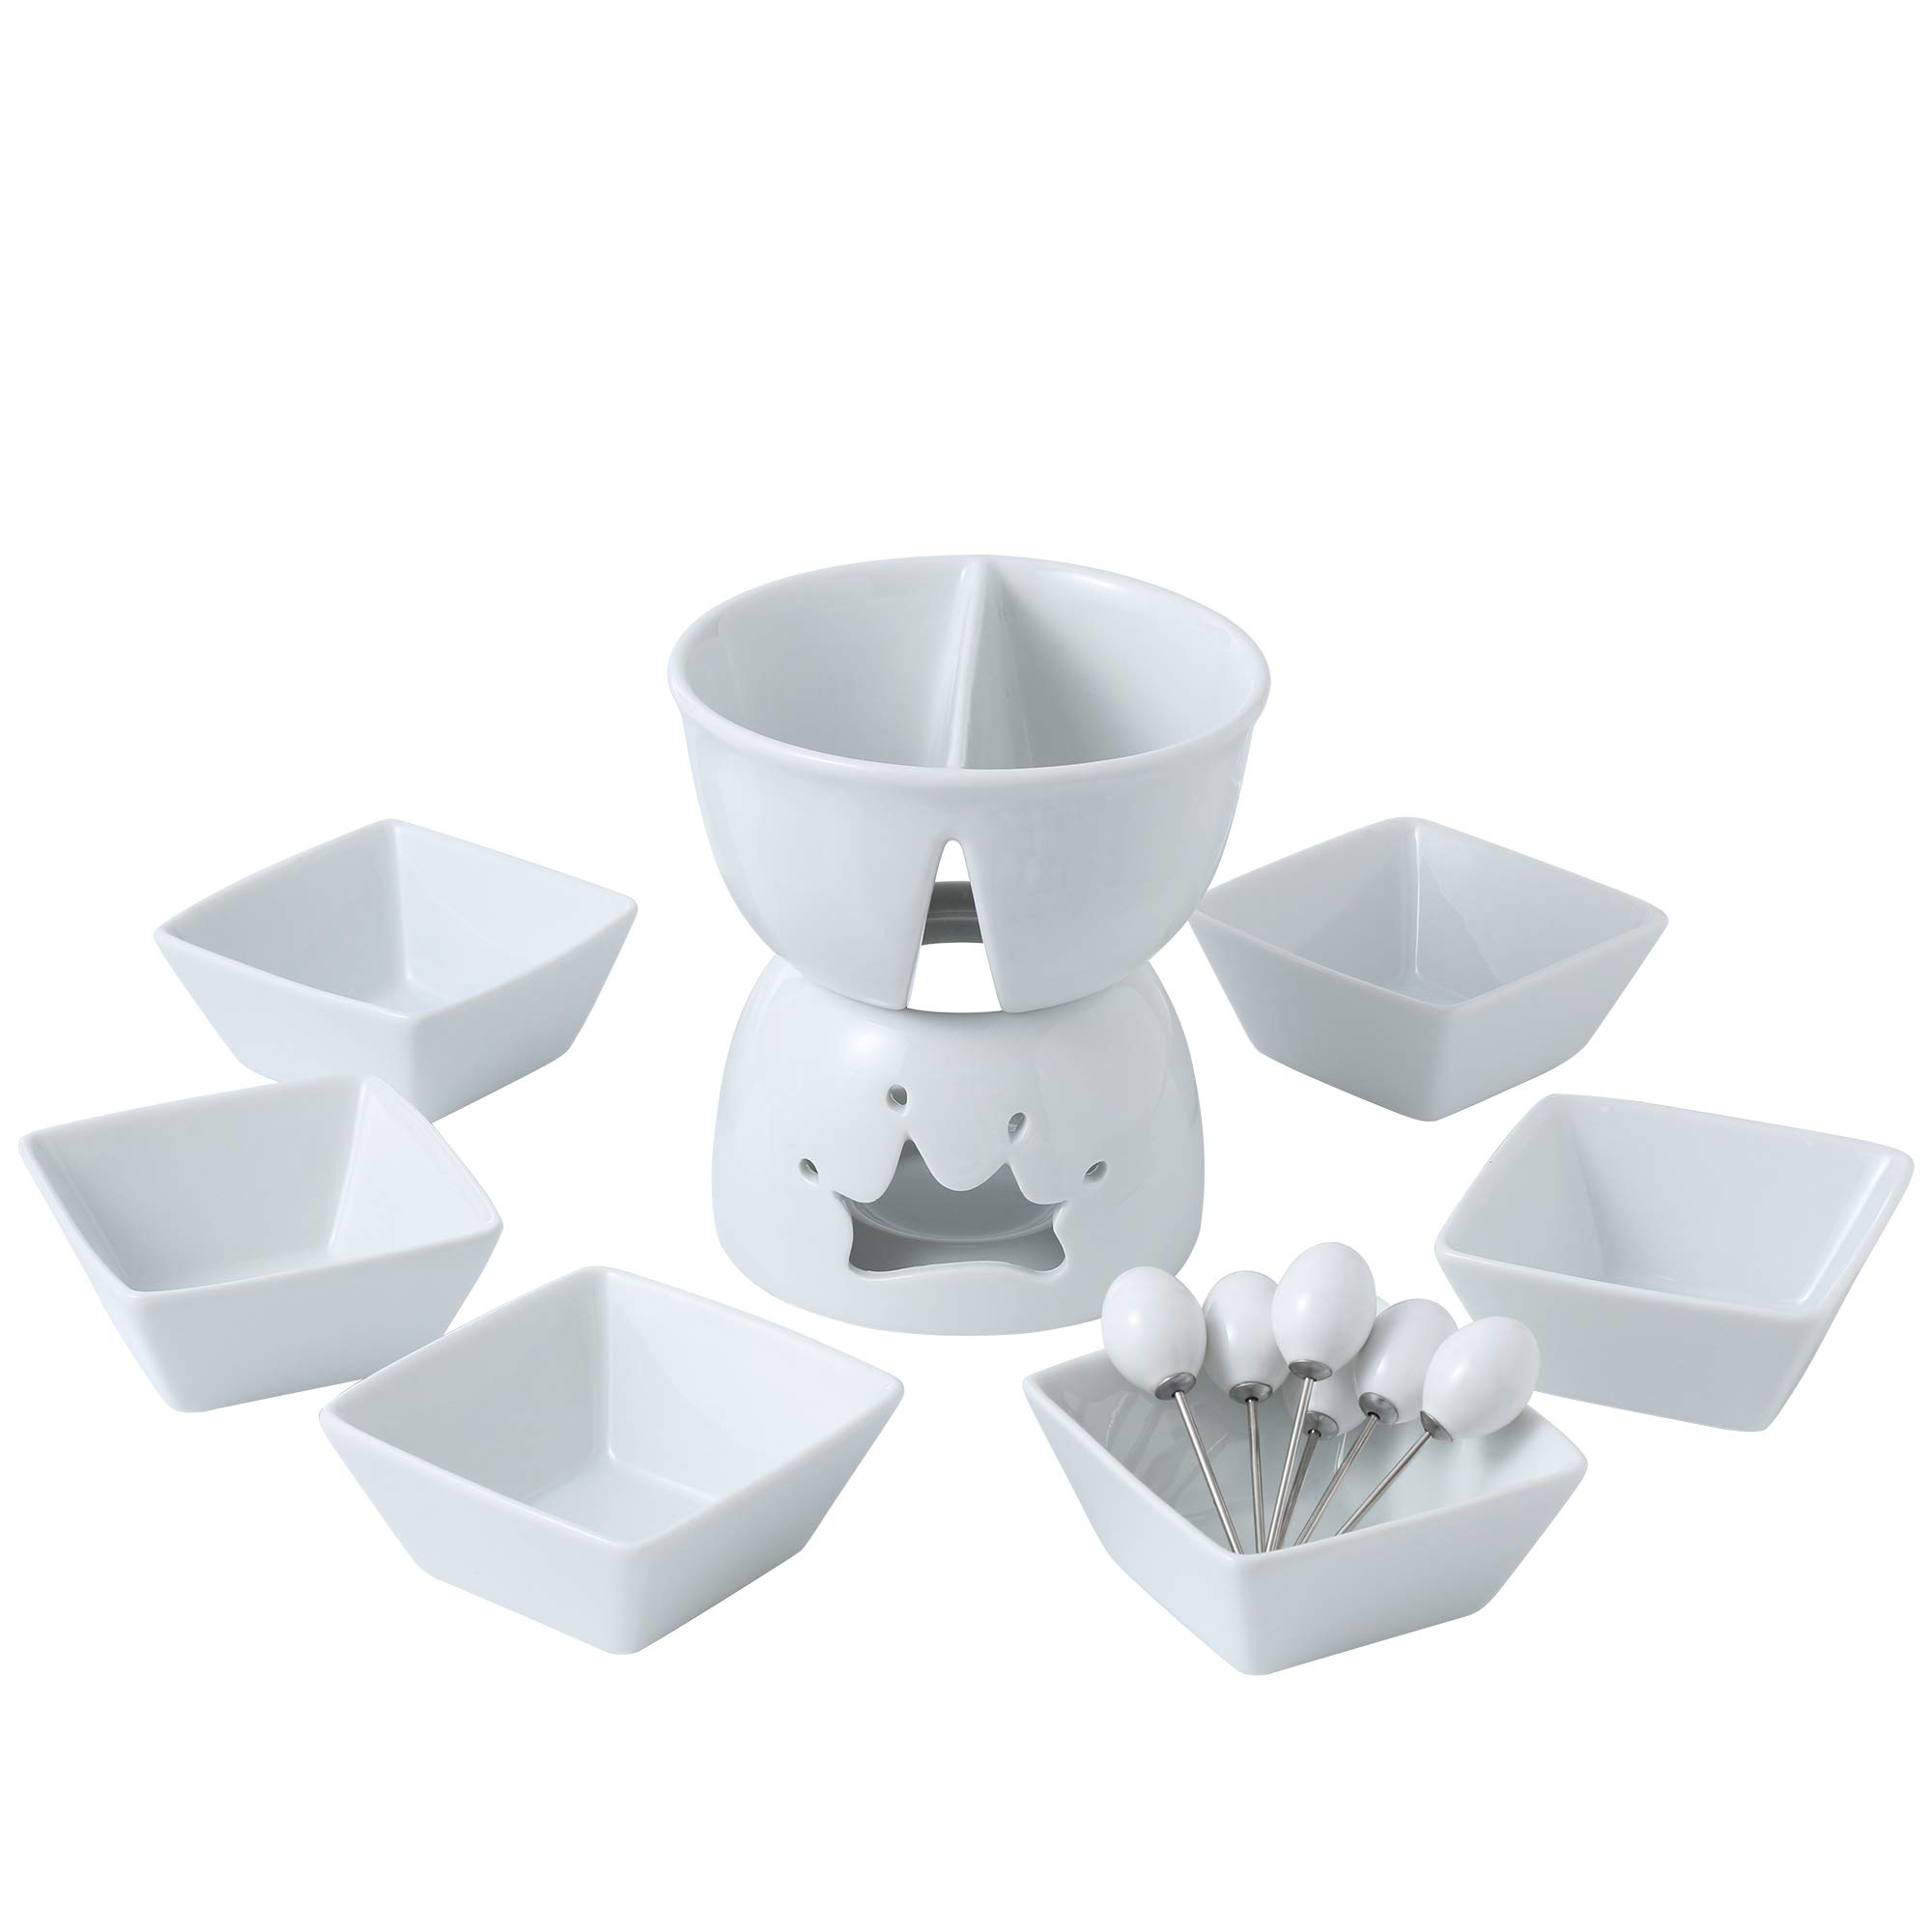 Malacasa, Series Favor, Two Compartments Ivory White Ceramic Porcelain Tealight Candle Cheese Butter Chocolate Fondue Set with 6 Dipping Bowls 6 Forks by Malacasa